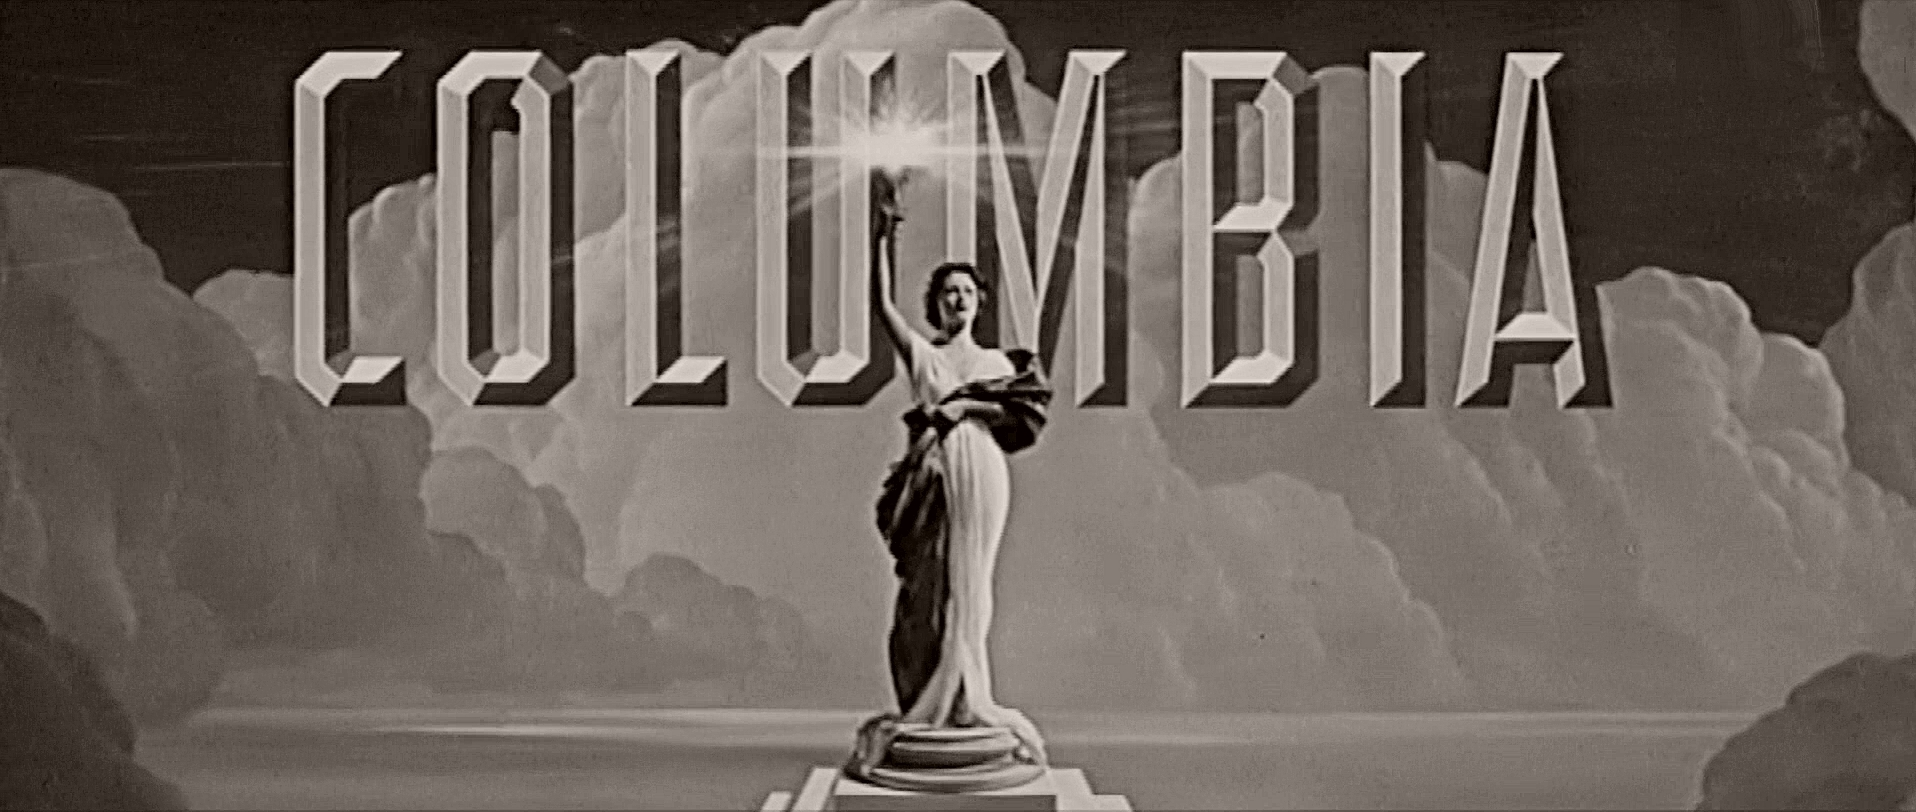 Main title from The Man Inside (1958) (1). Columbia